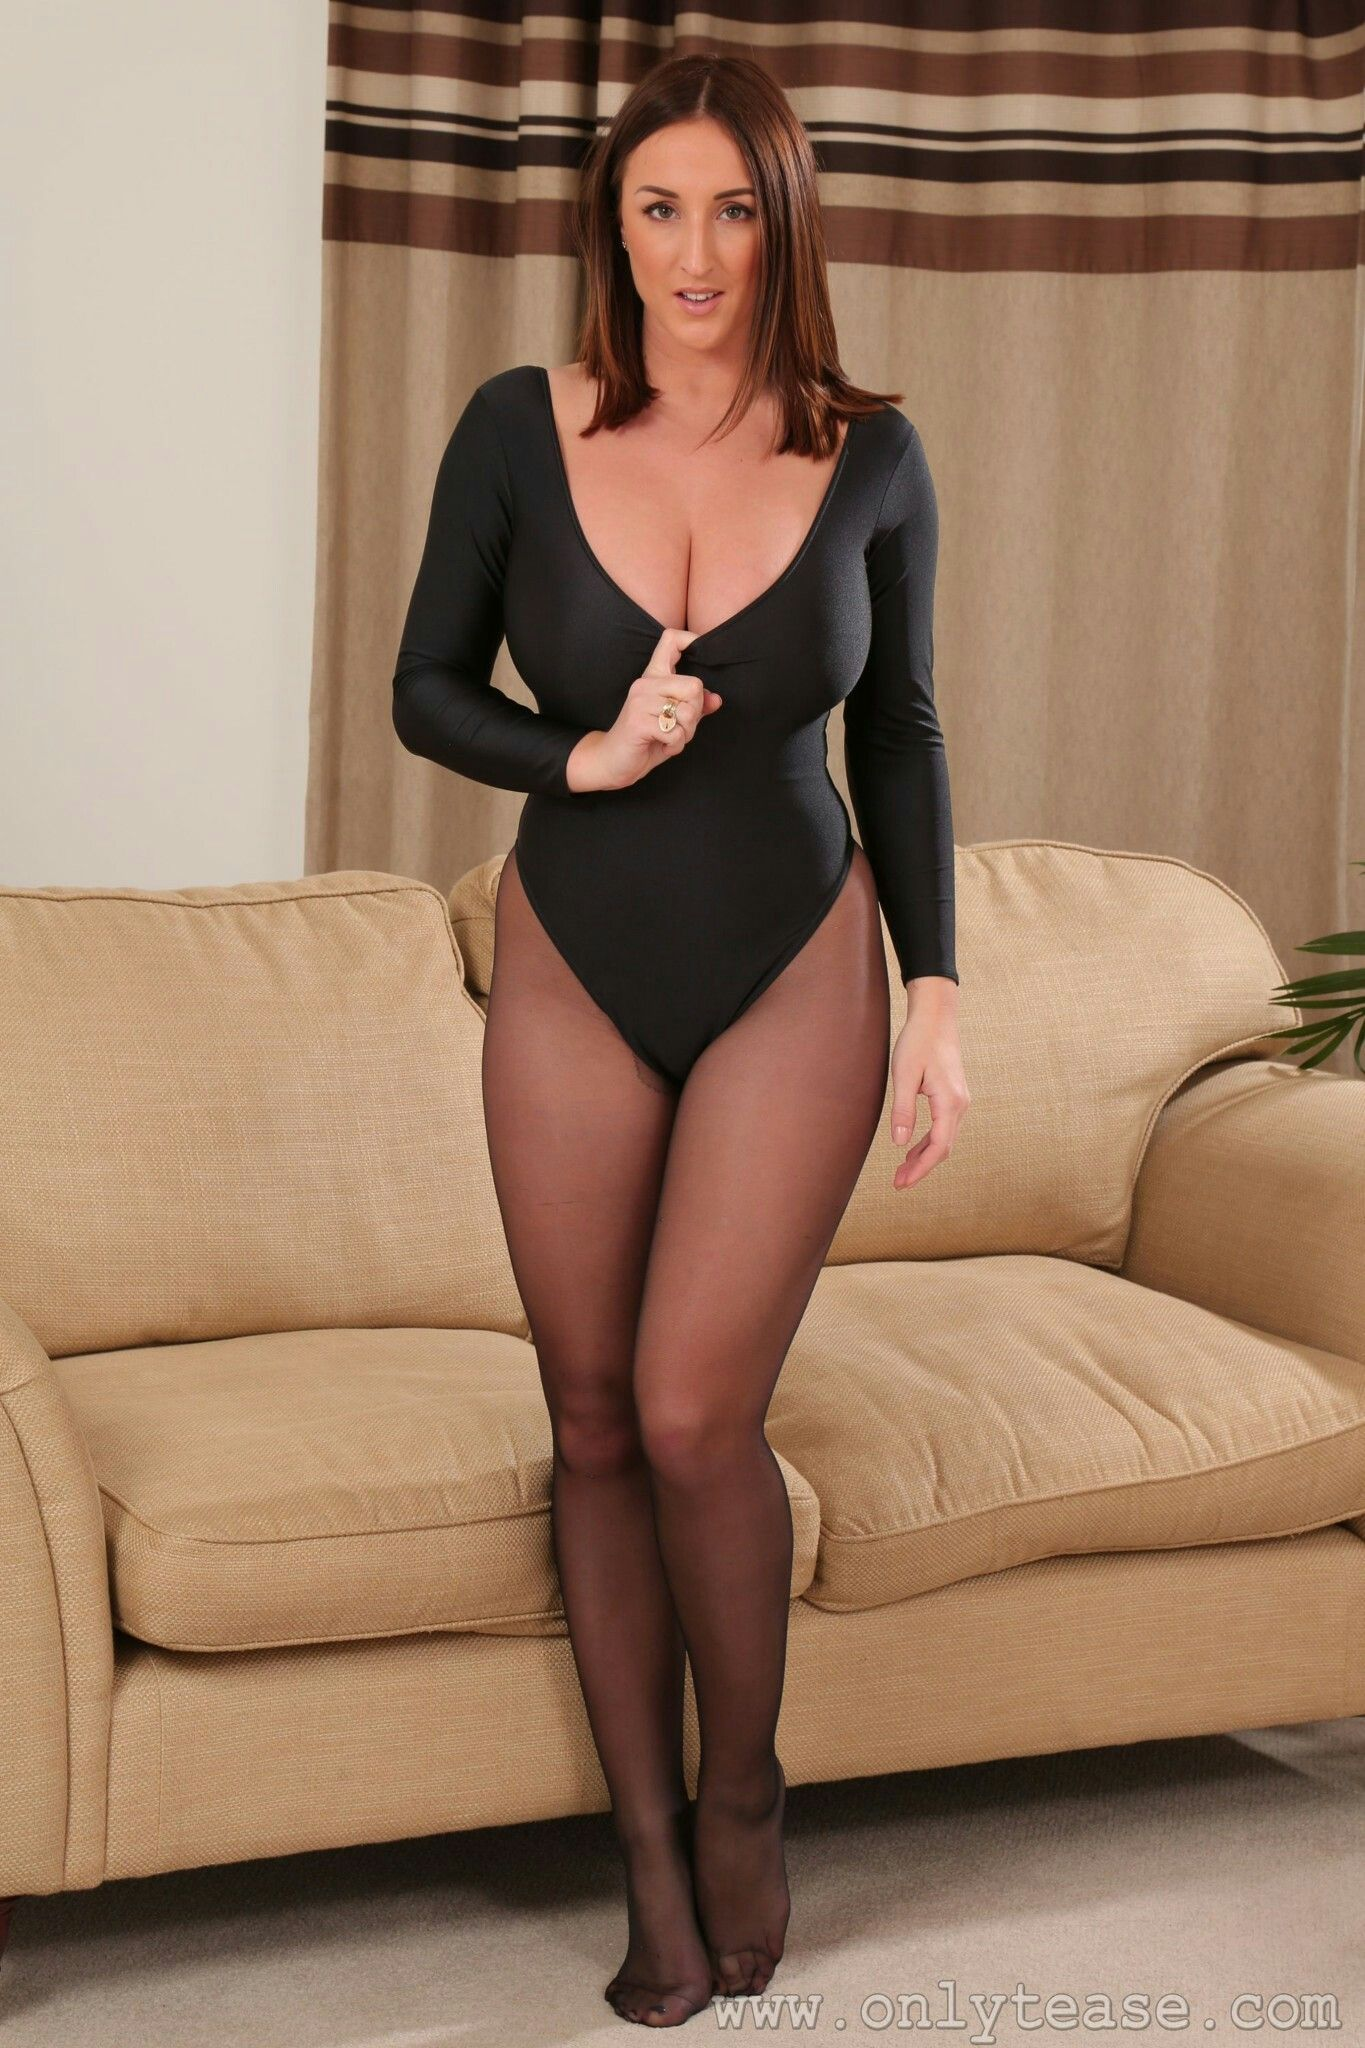 Hot Hot Pantyhose Sex Pantyhose 22